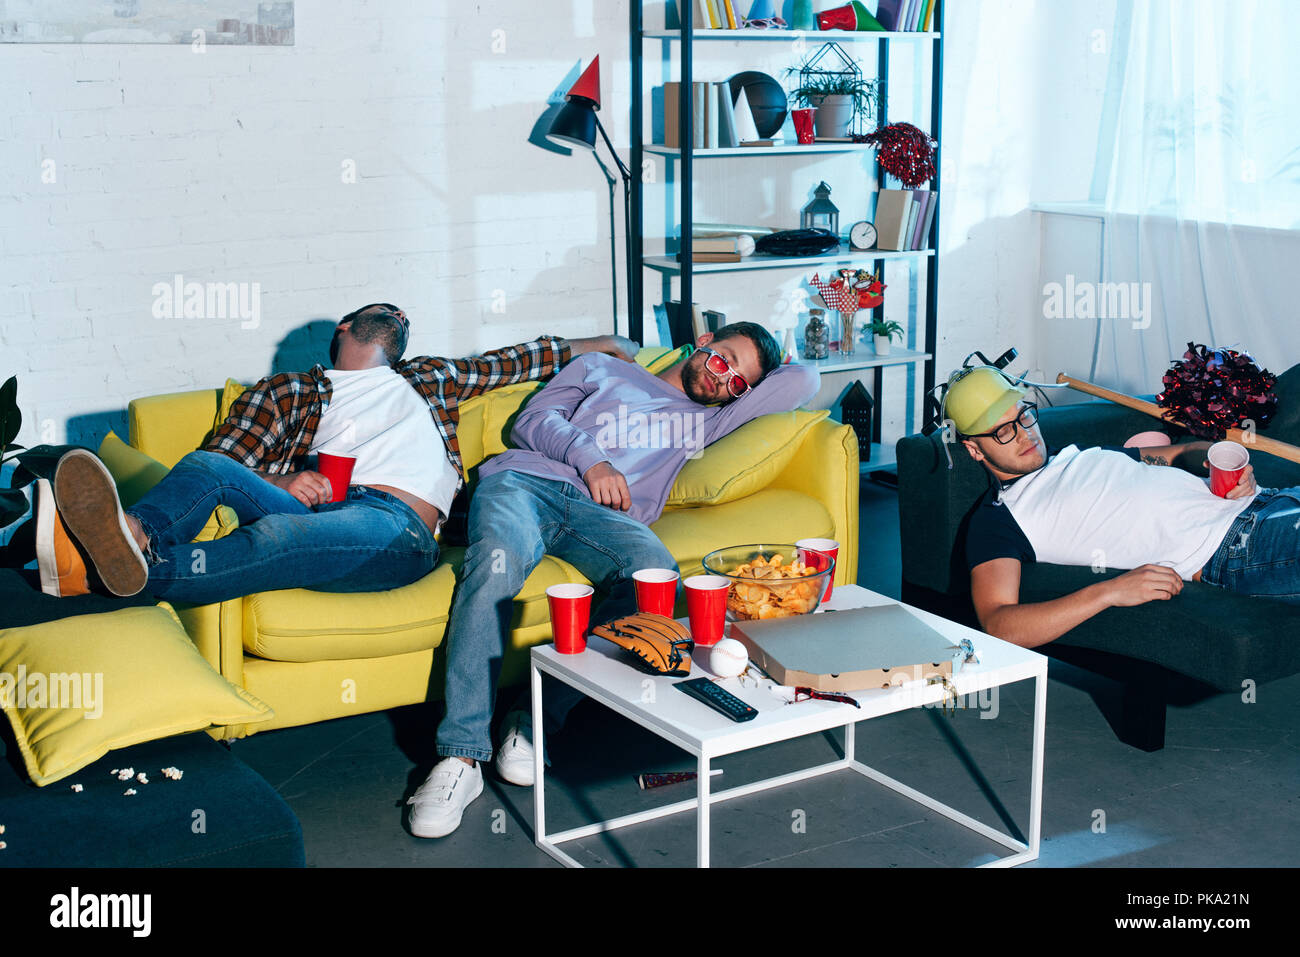 drunk young male friends sleeping on couches after home party - Stock Image